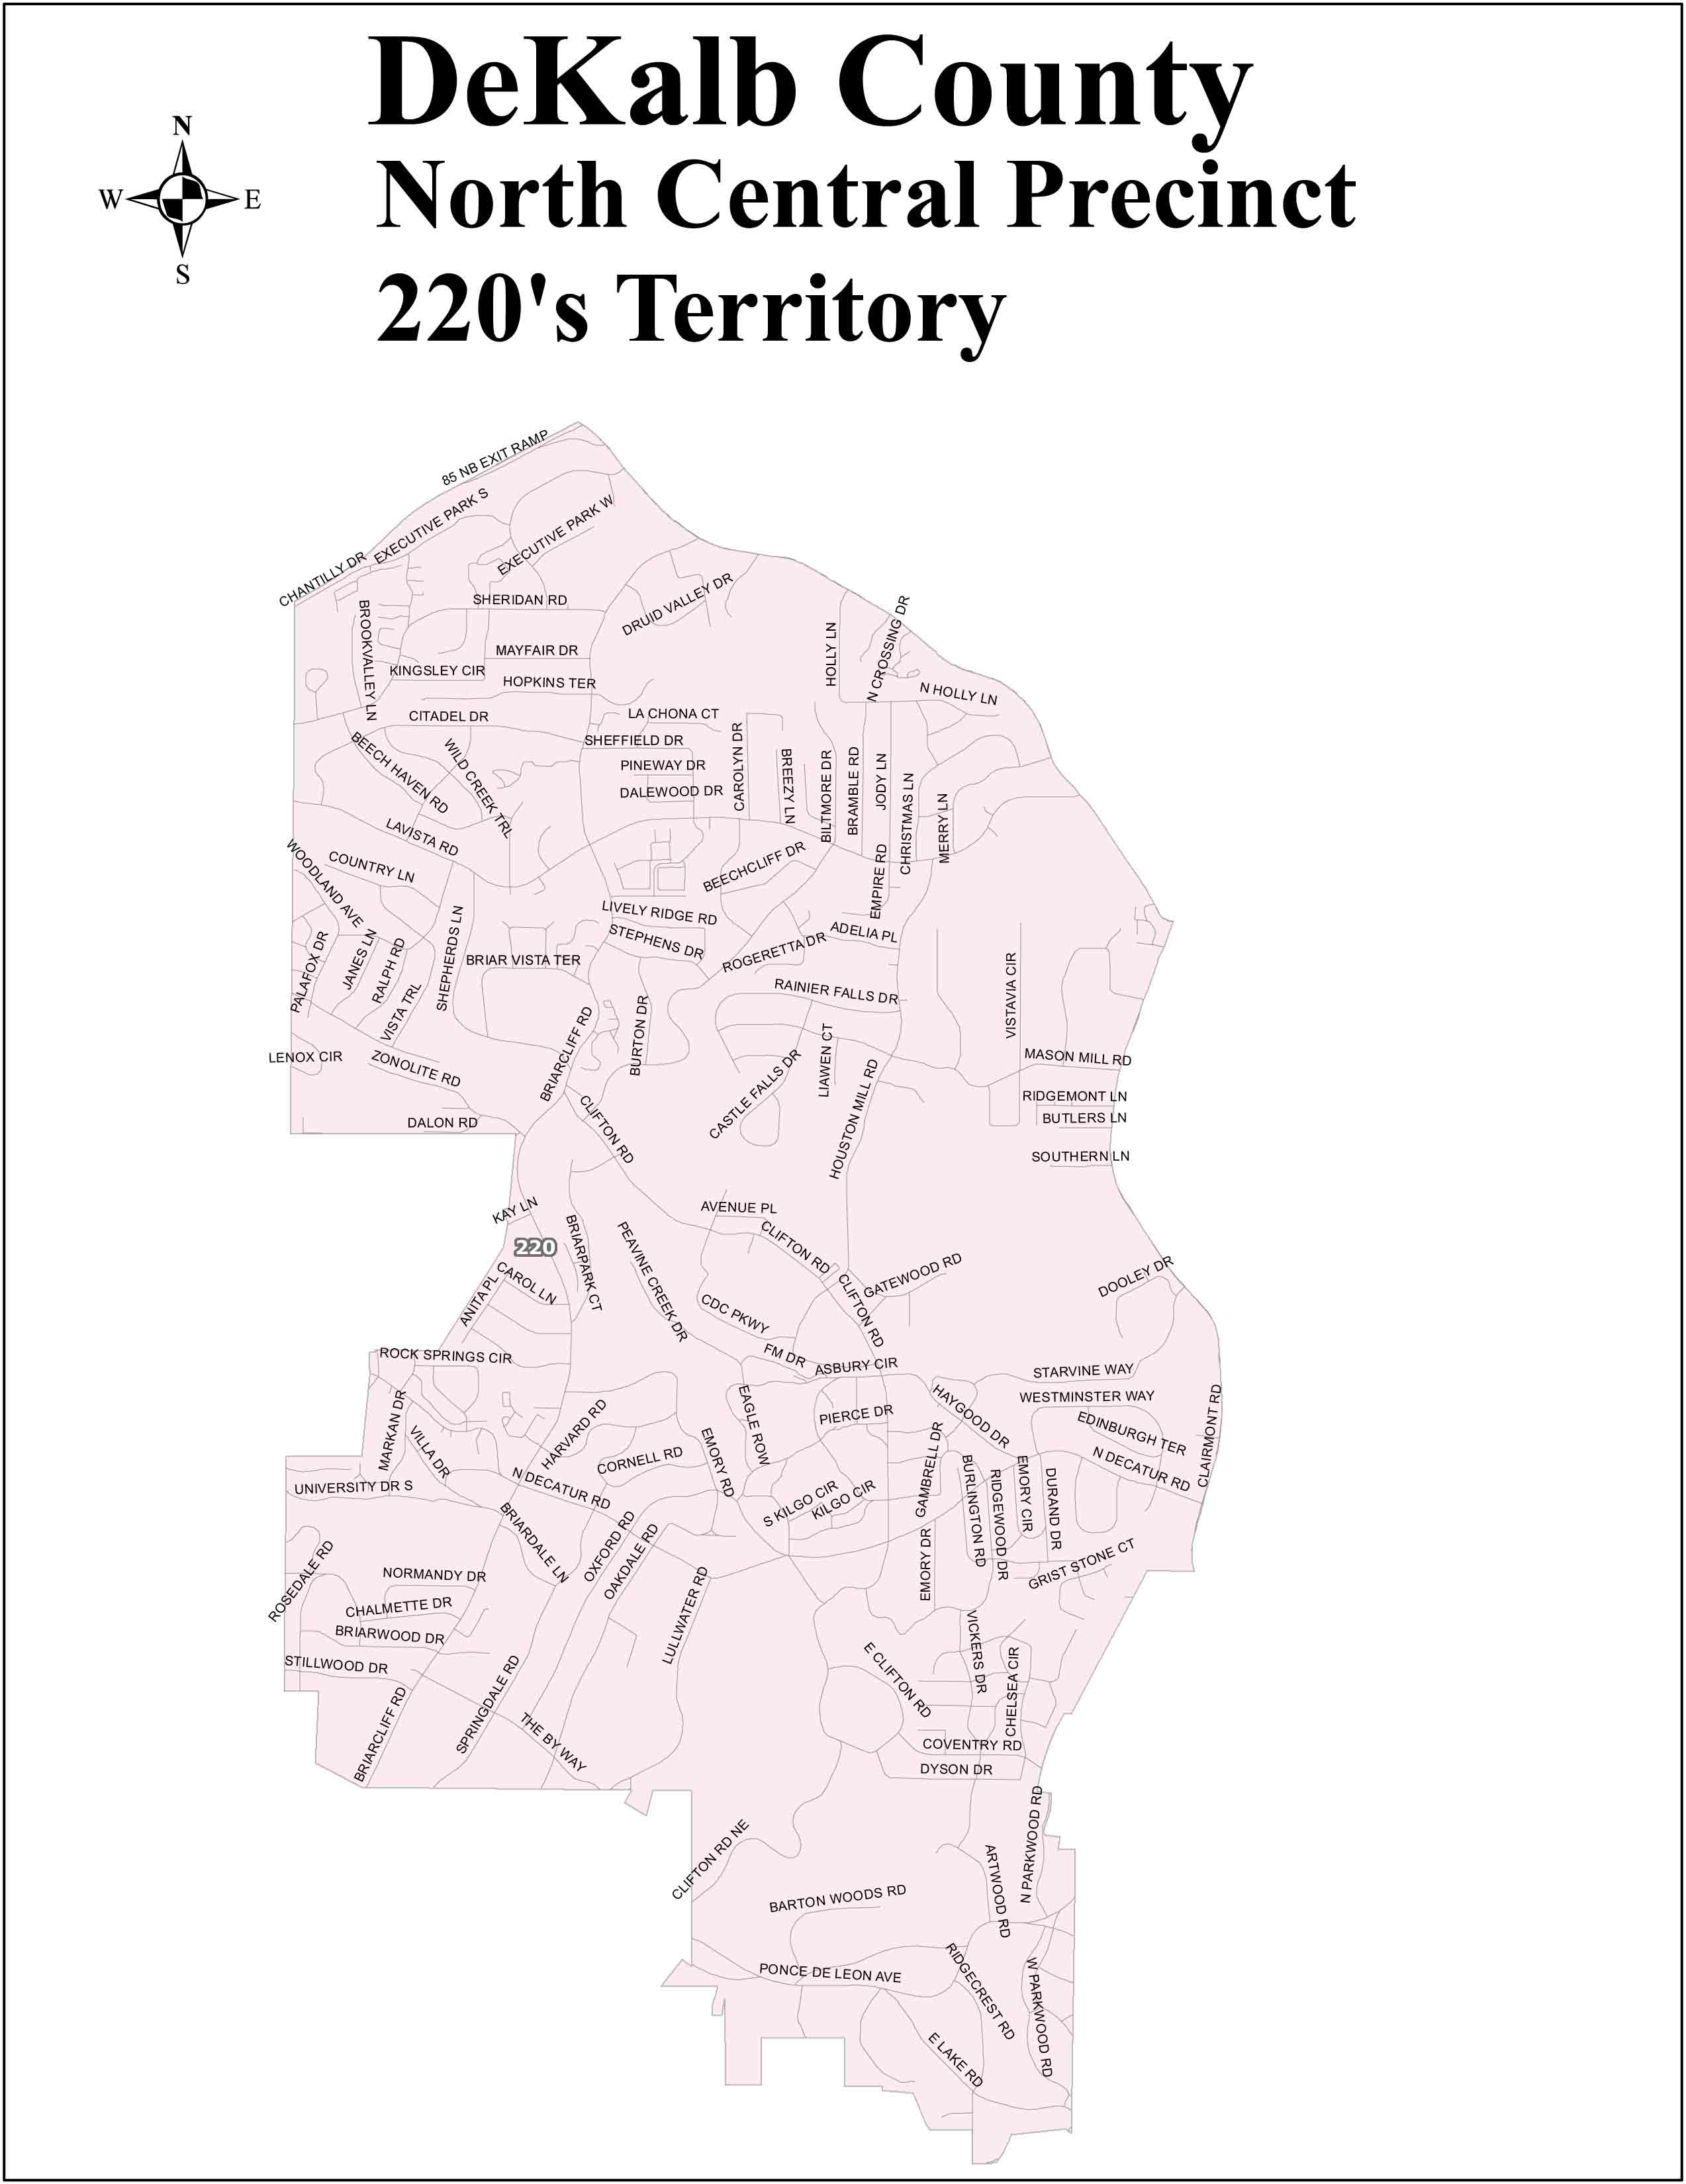 Dekalb County North Central Territory 220 MAP on